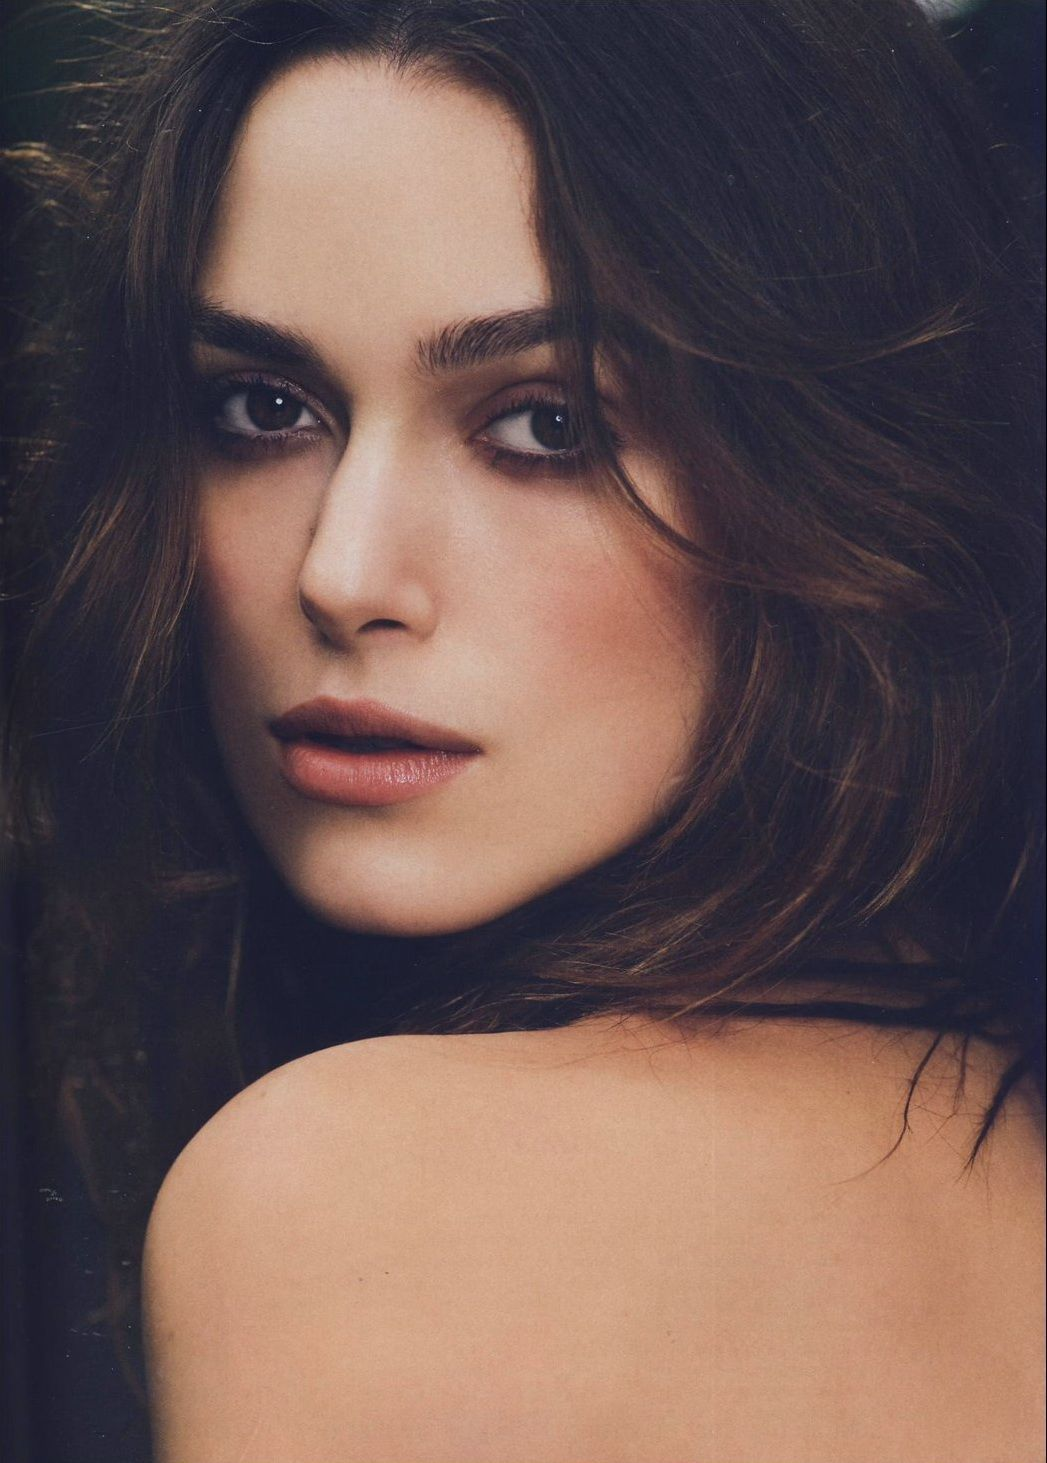 Keira Knightley (born 1985)